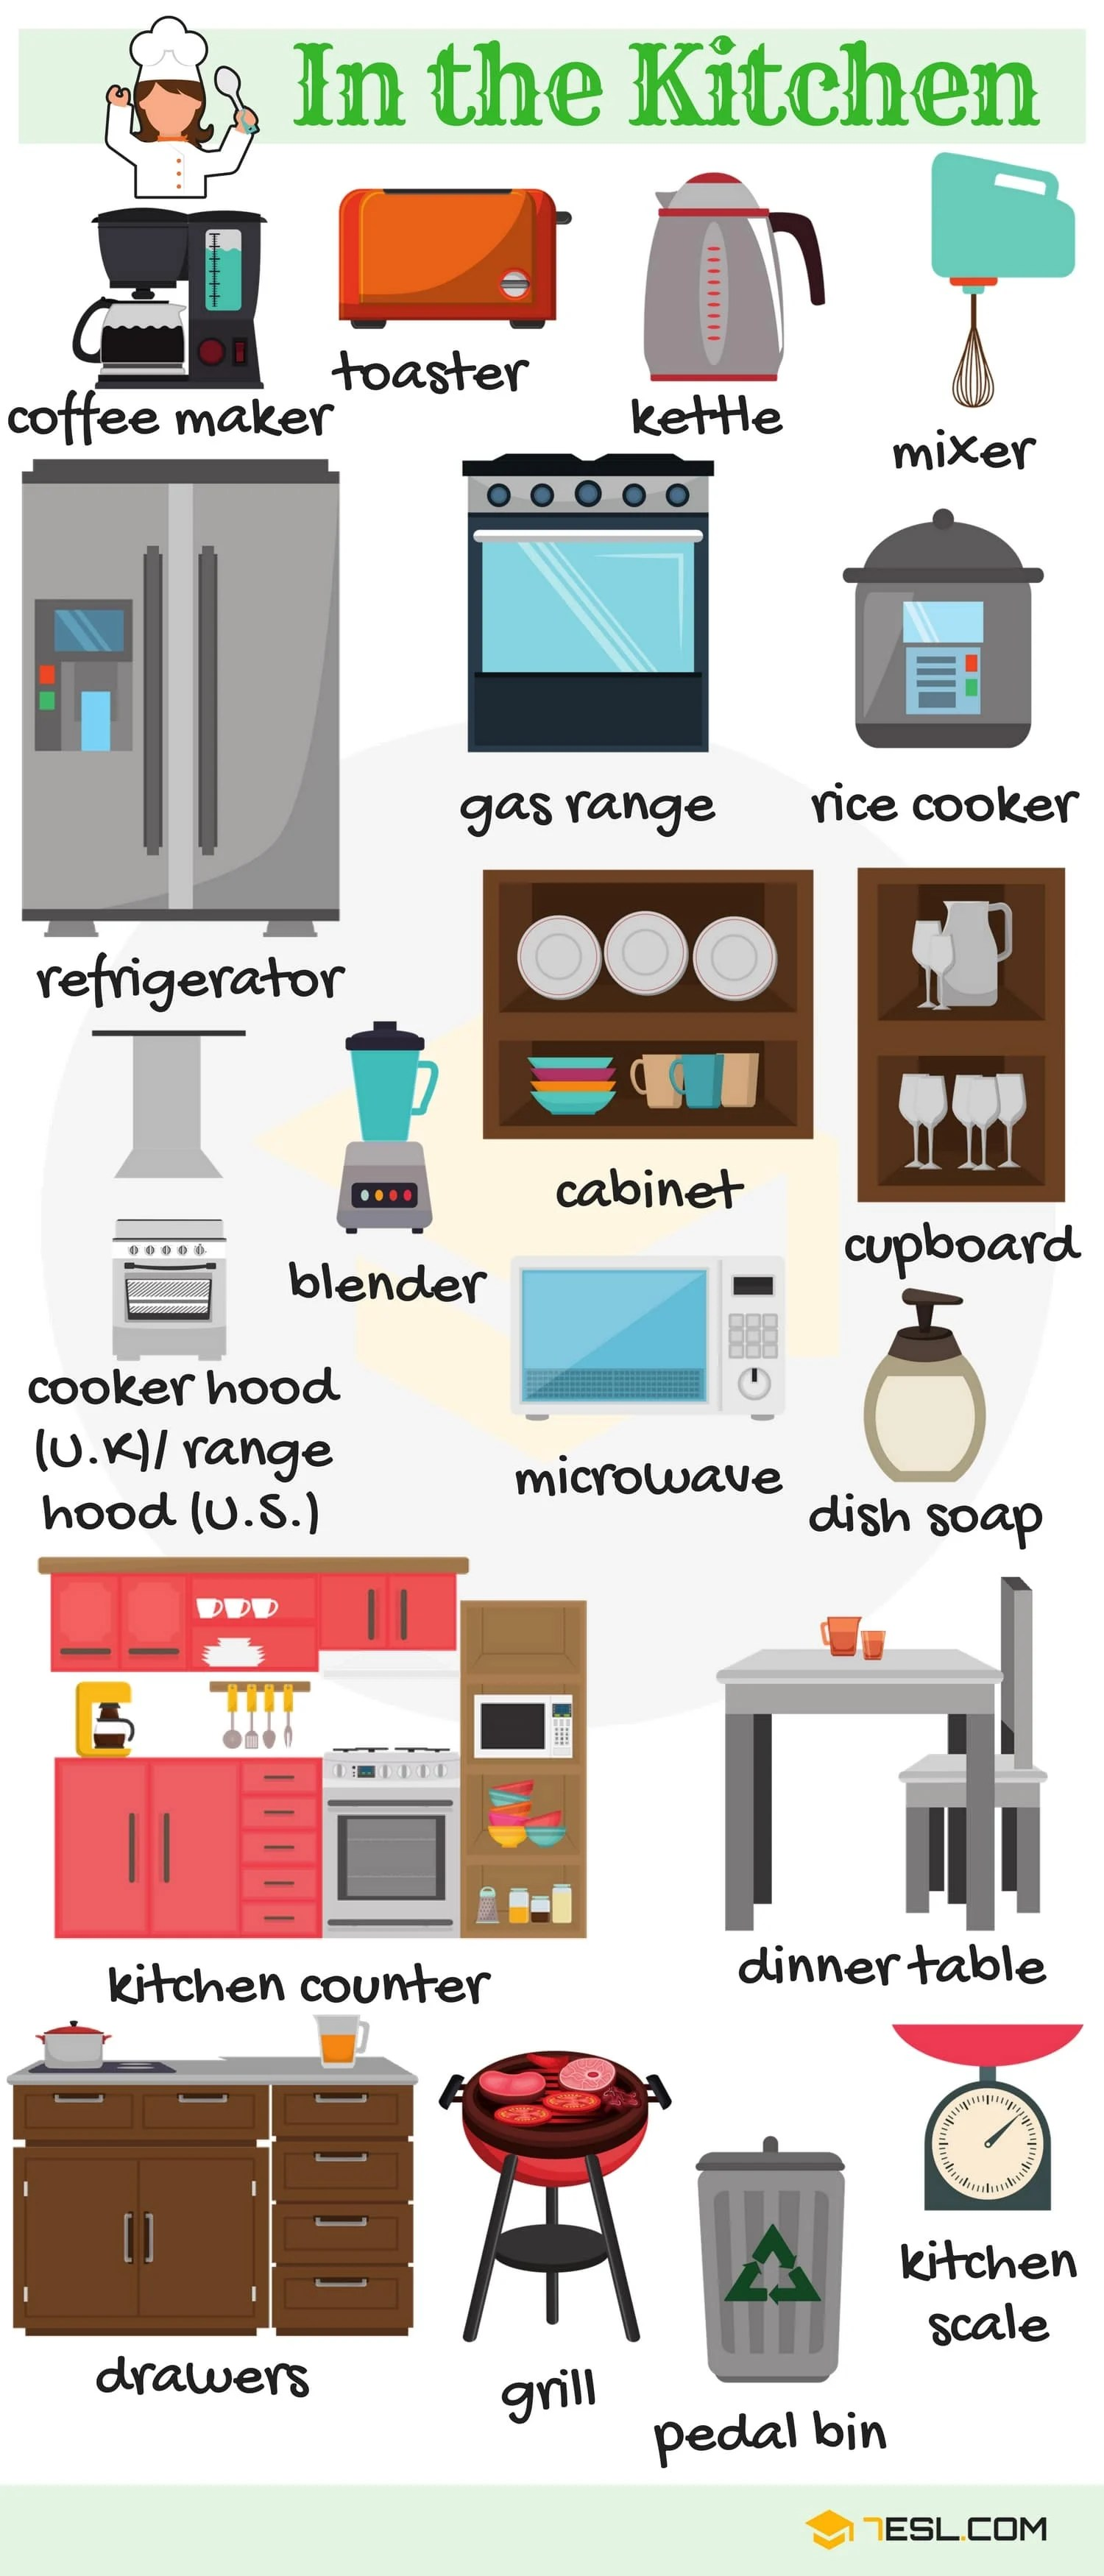 In the Kitchen Vocabulary in English 2